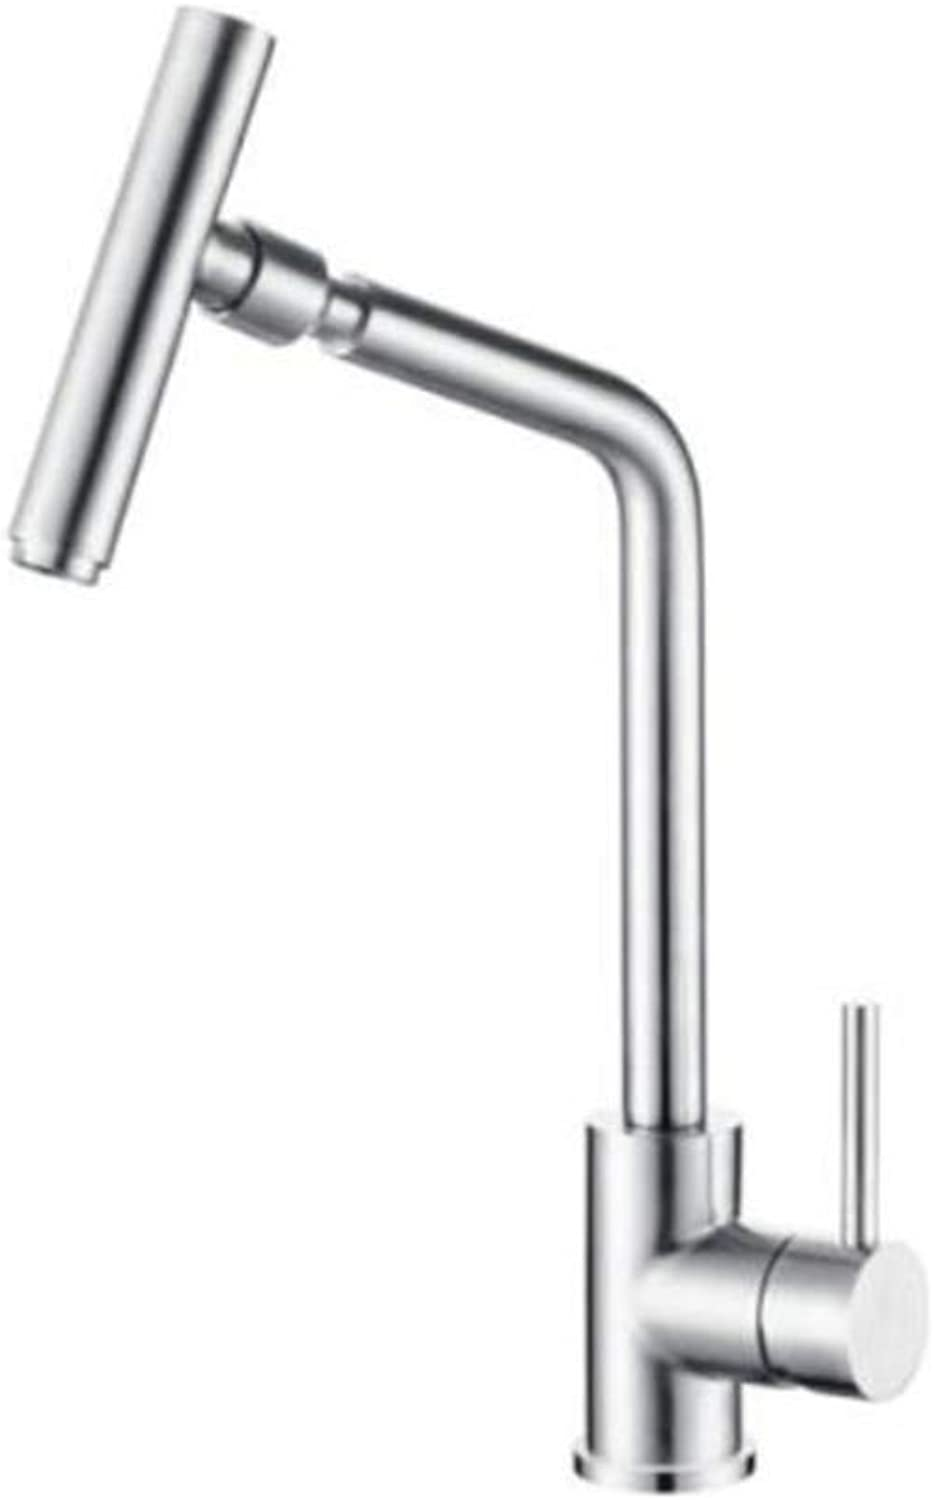 Janitorial & Sanitation Supplies Janitorial & Sanitation Supplies Ldoons Kitchen Bathroom Stainless Steel Mop Pool Wall-Mounted Hot And Cold A Faucet